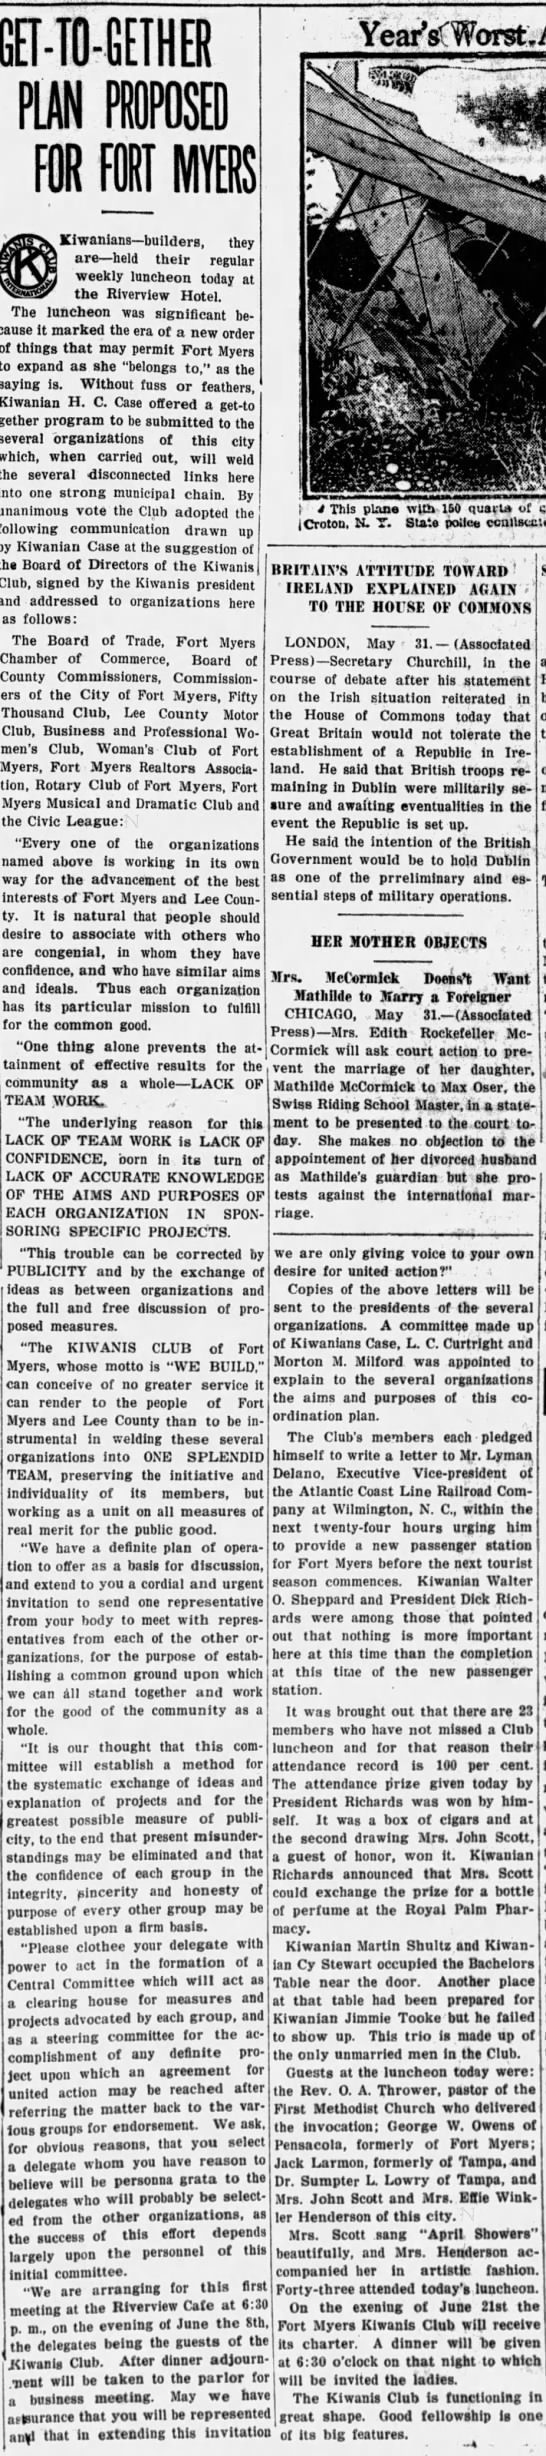 Fort Myers Press, May 31, 1922